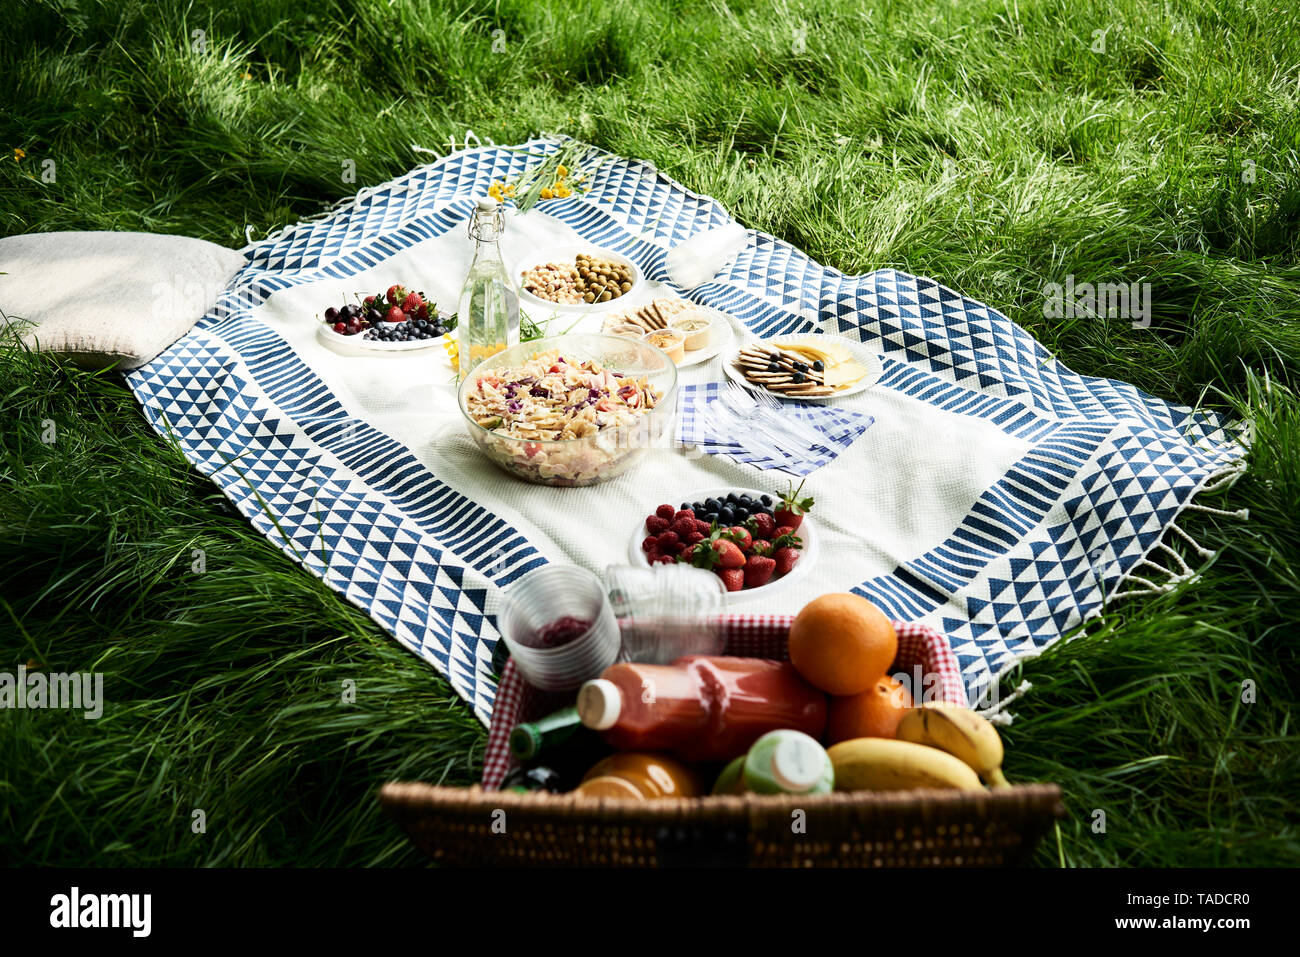 Healthy picnic snacks on a blanket in grass - Stock Image